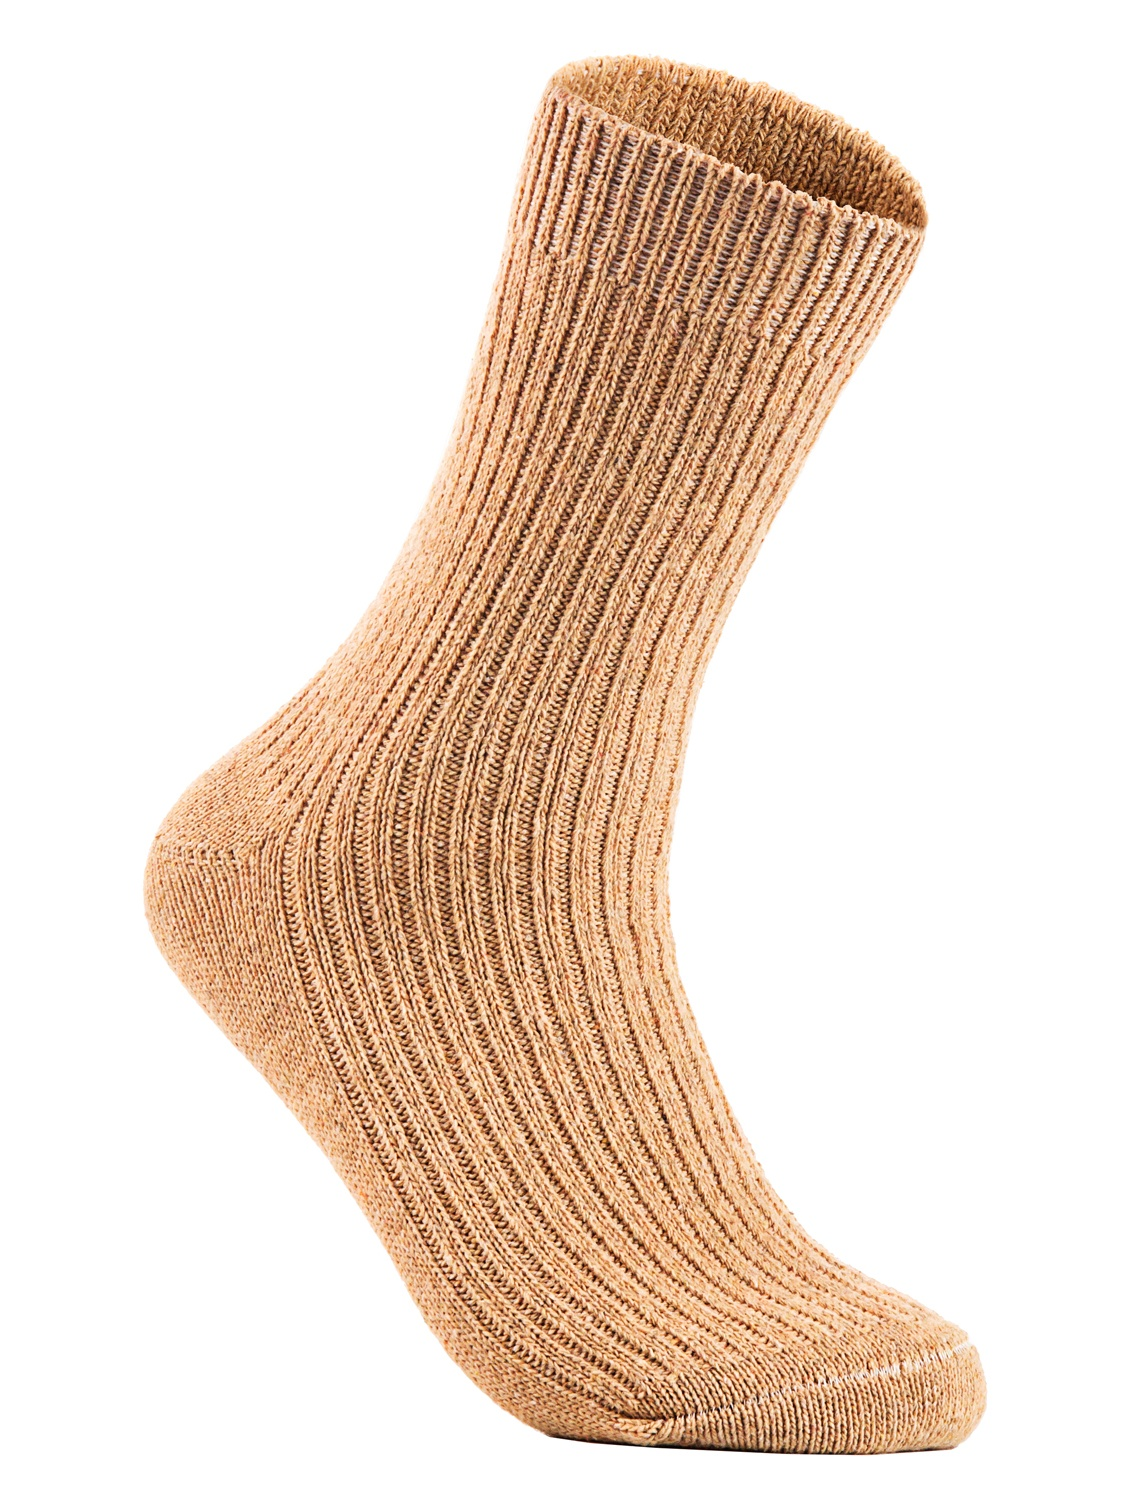 Lian Style Big Girls 4 Pairs Knitted Wool Crew Socks FS03 Size XL (Dark Gray)